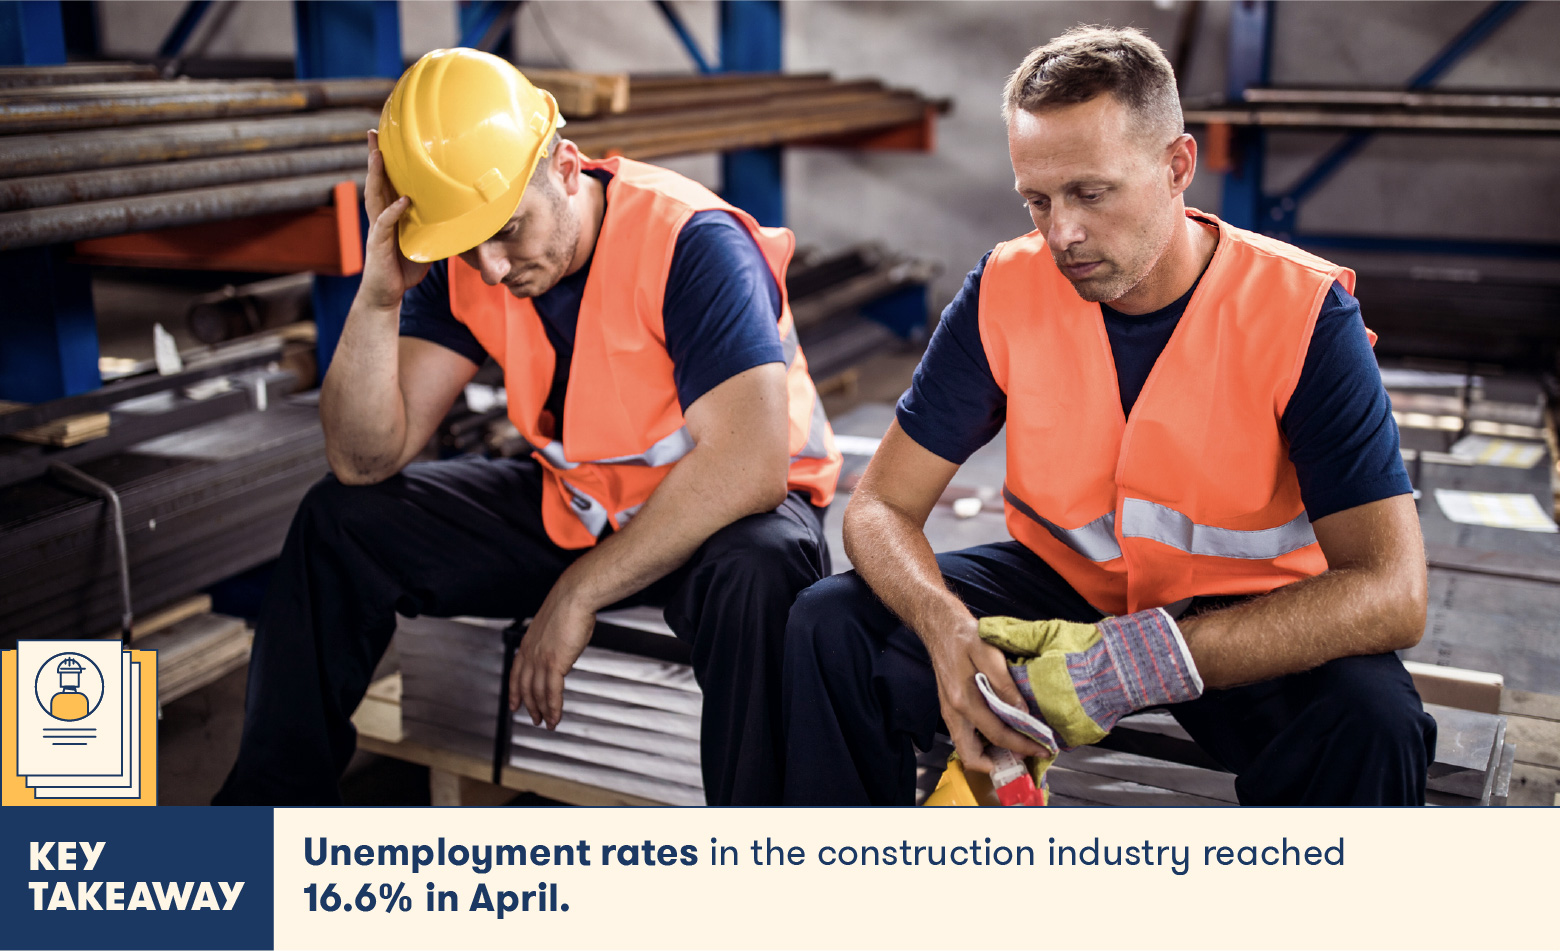 Unemployment rates are high in construction